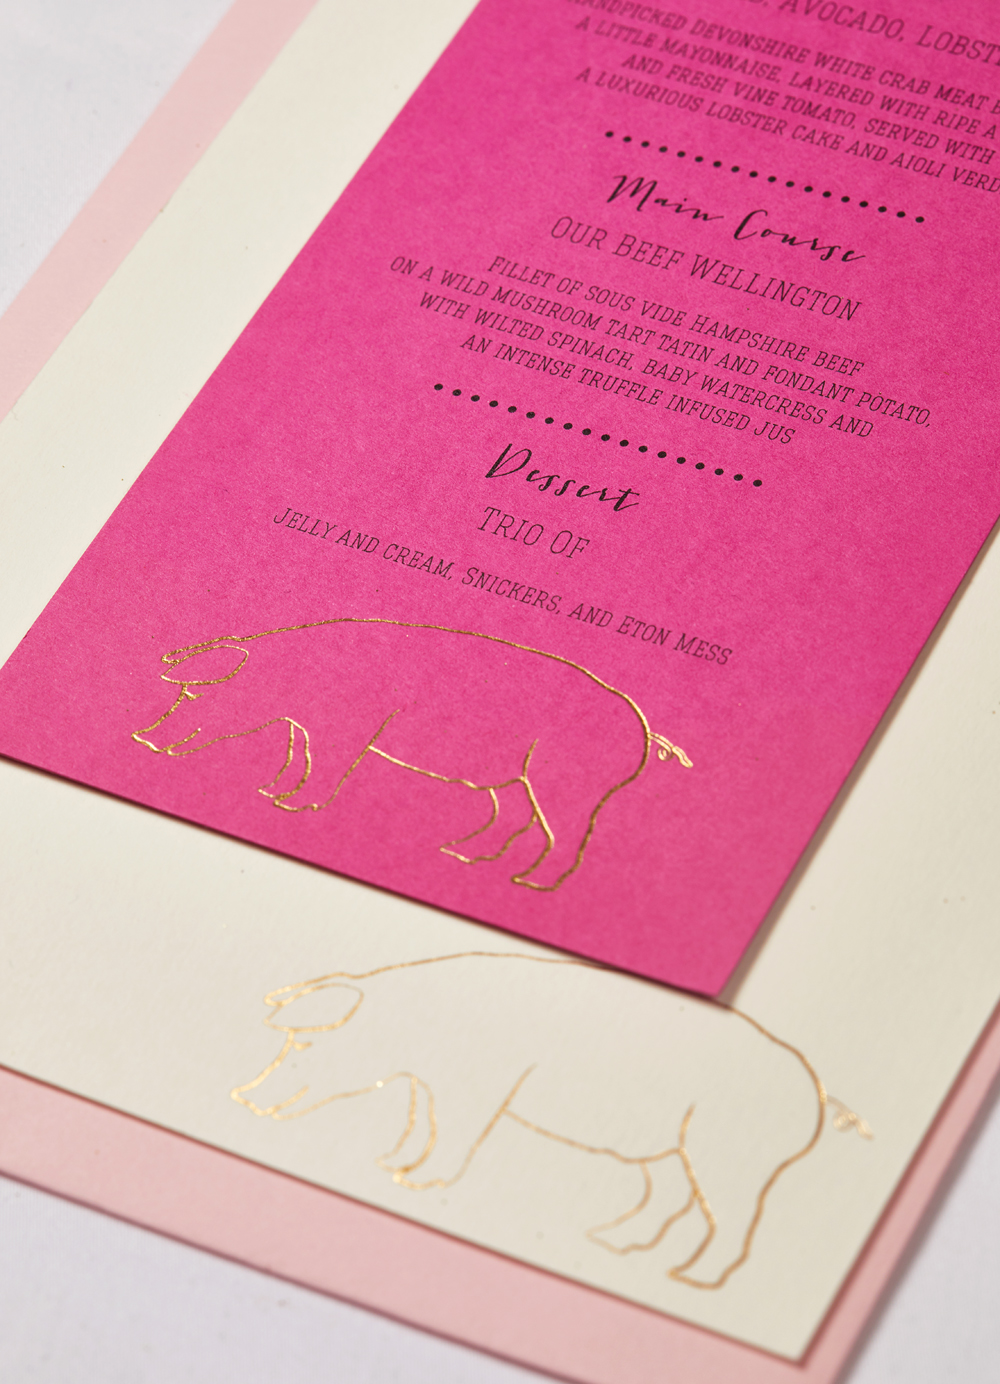 Ruth and Mike's bespoke wedding invitation